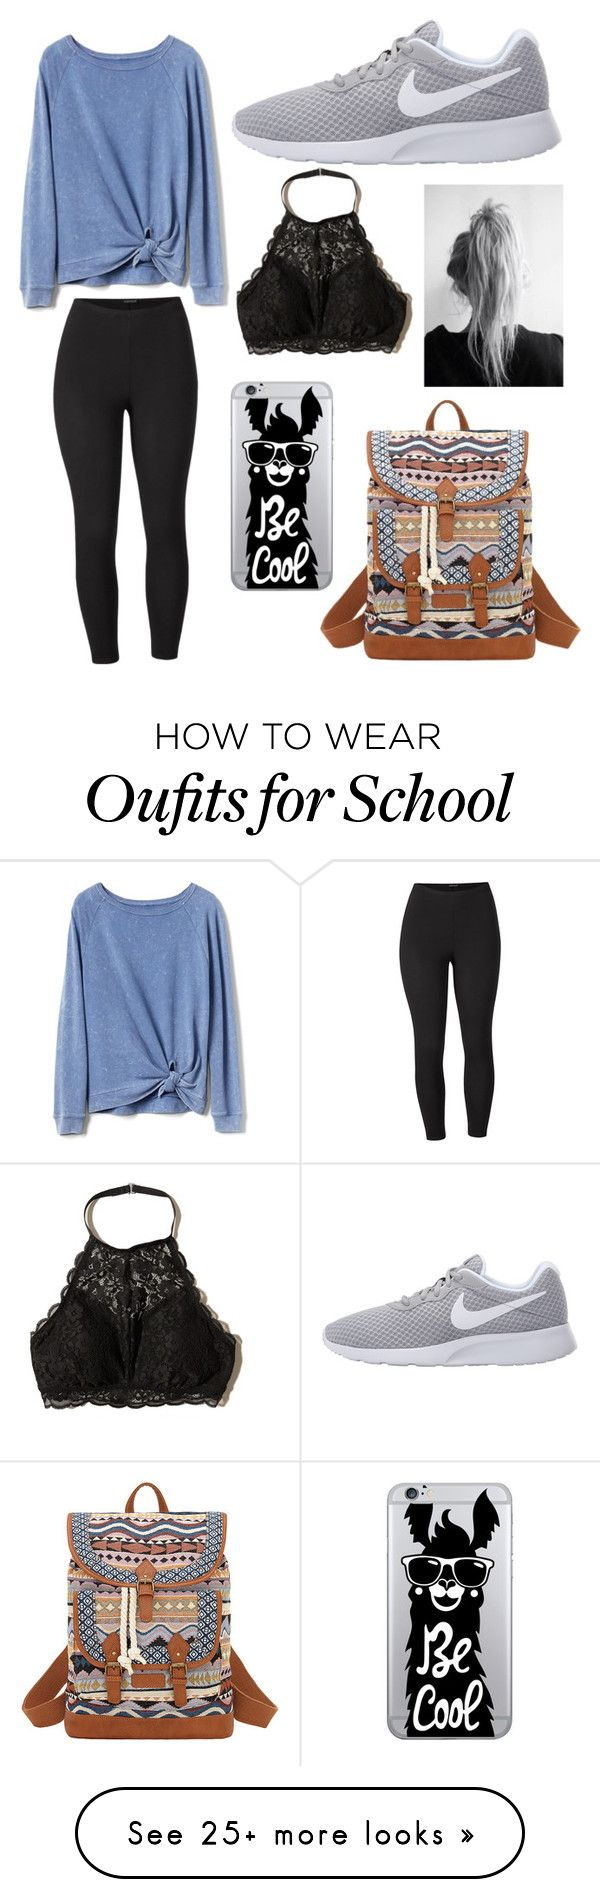 """School outfit"" by mikaelawriter on Polyvore featuring Gap, Hollister Co., NIKE, OTM Essentials, Bandana, Venus and plus size clothing"